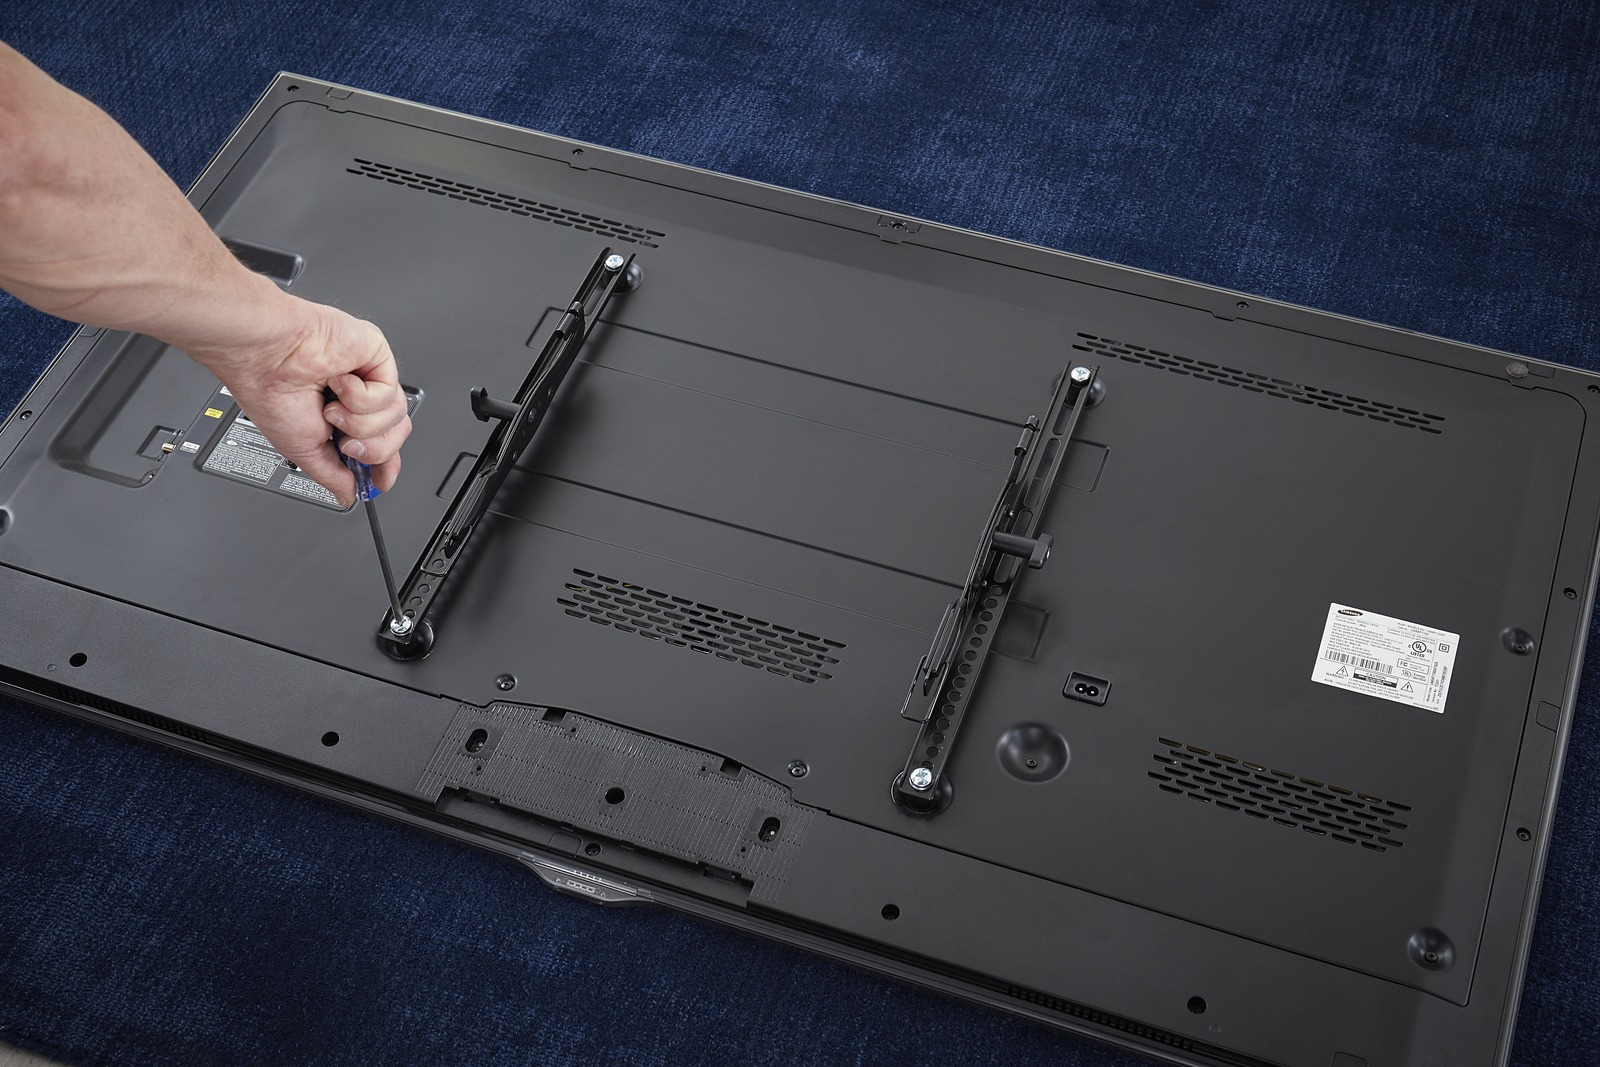 Mounting a TV - Attach Brackets to Back of TV